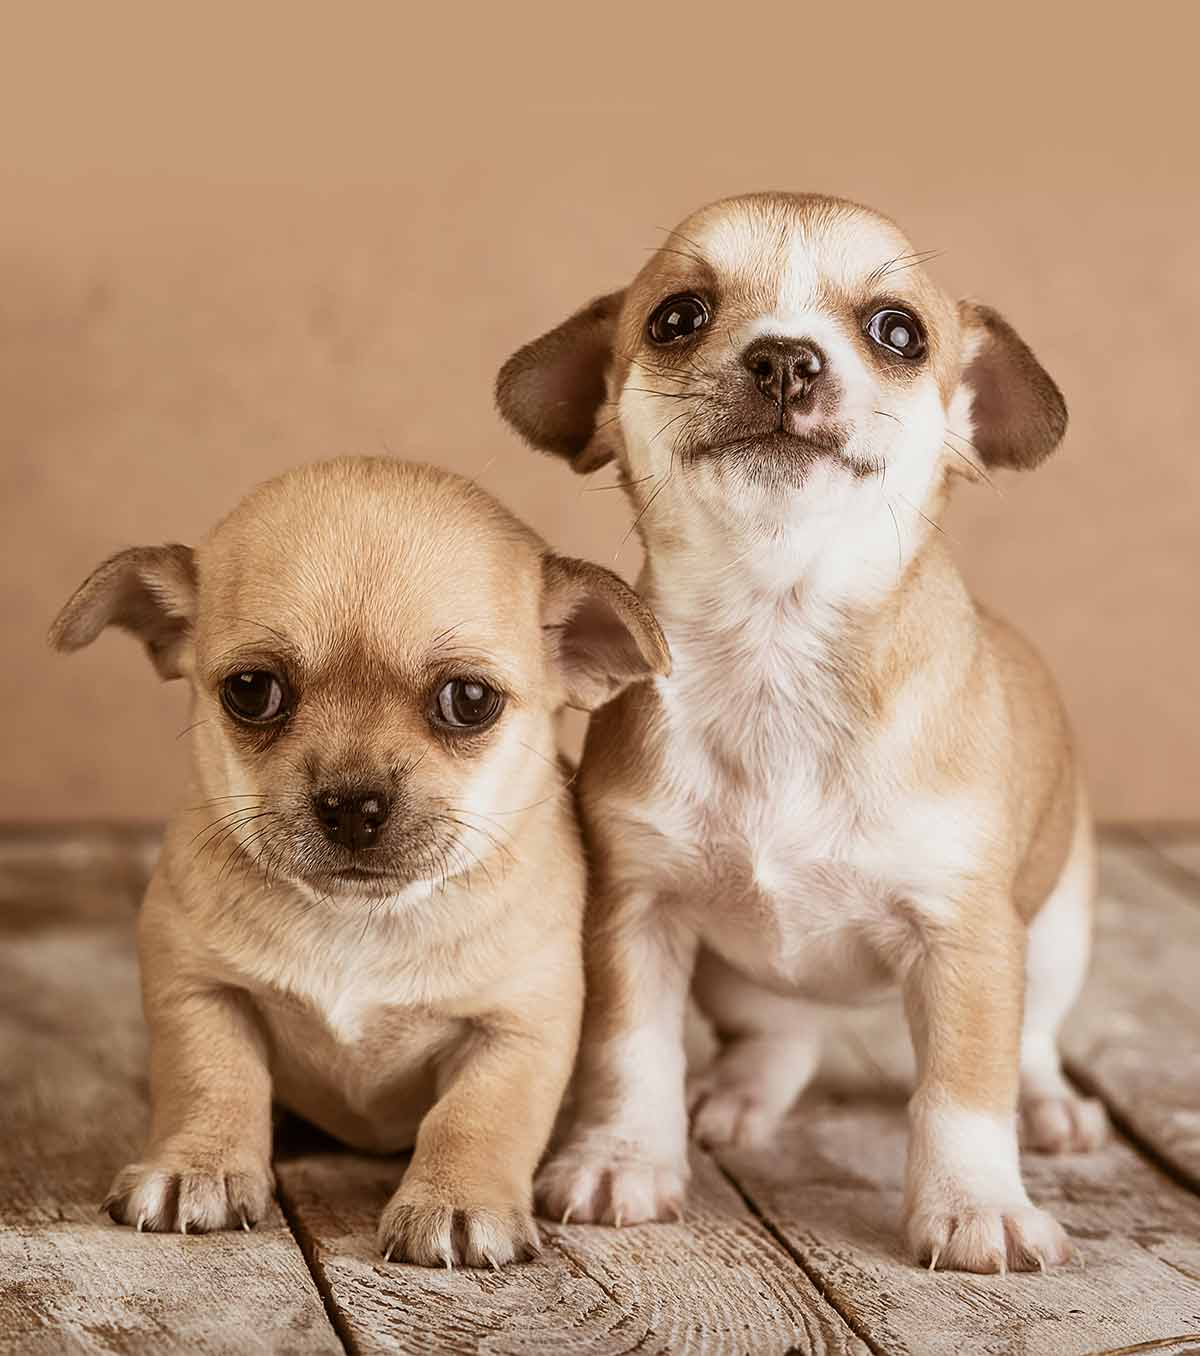 300 Adorable Chihuahua Dog Name Ideas